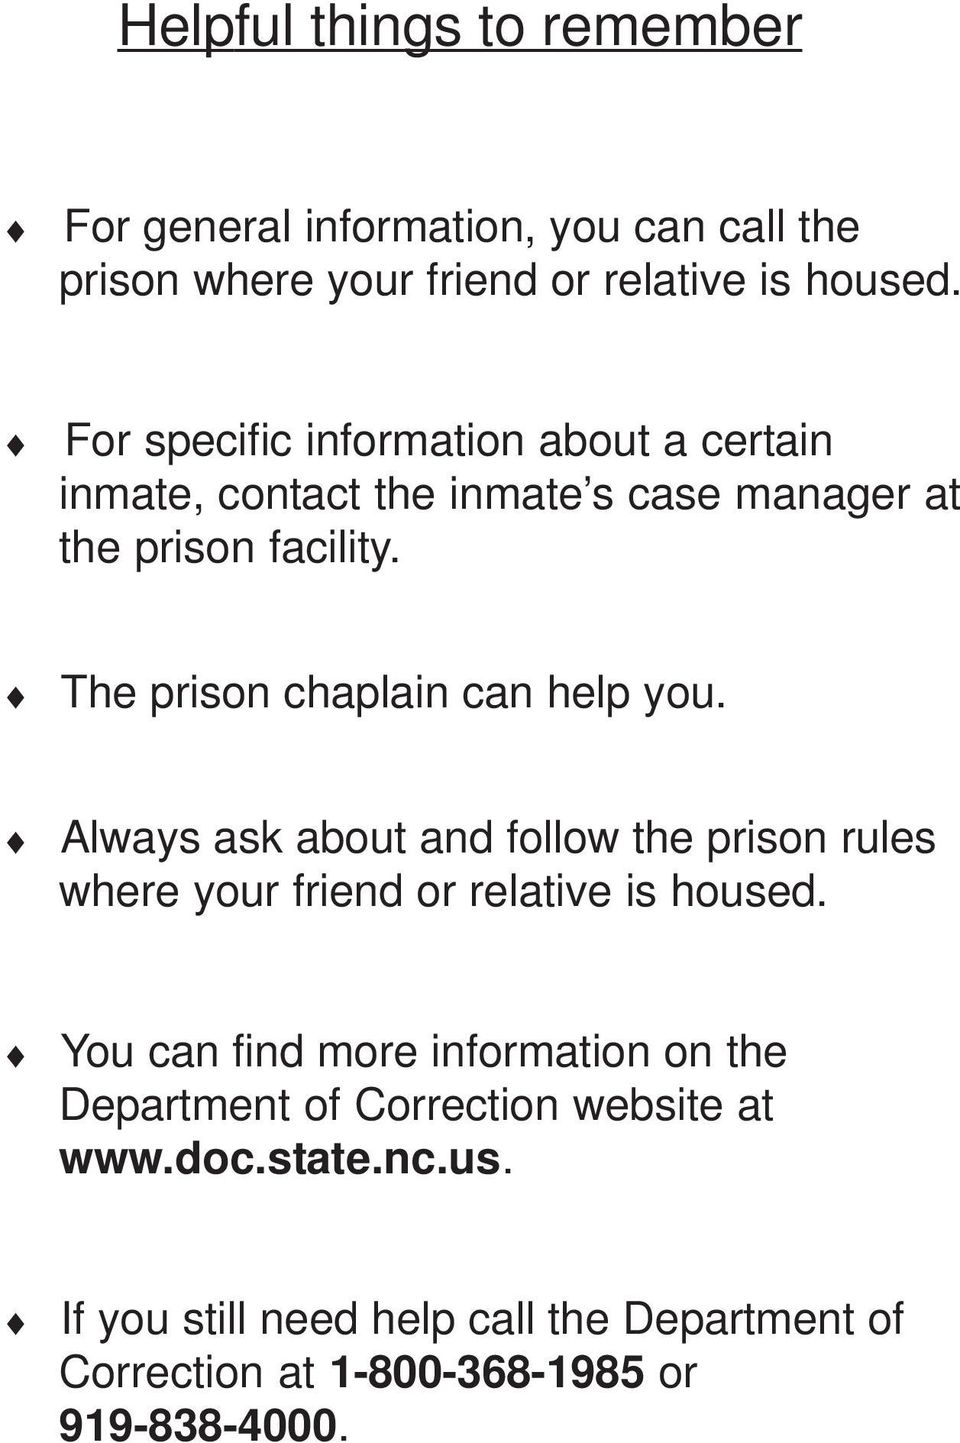 The prison chaplain can help you. Always ask about and follow the prison rules where your friend or relative is housed.